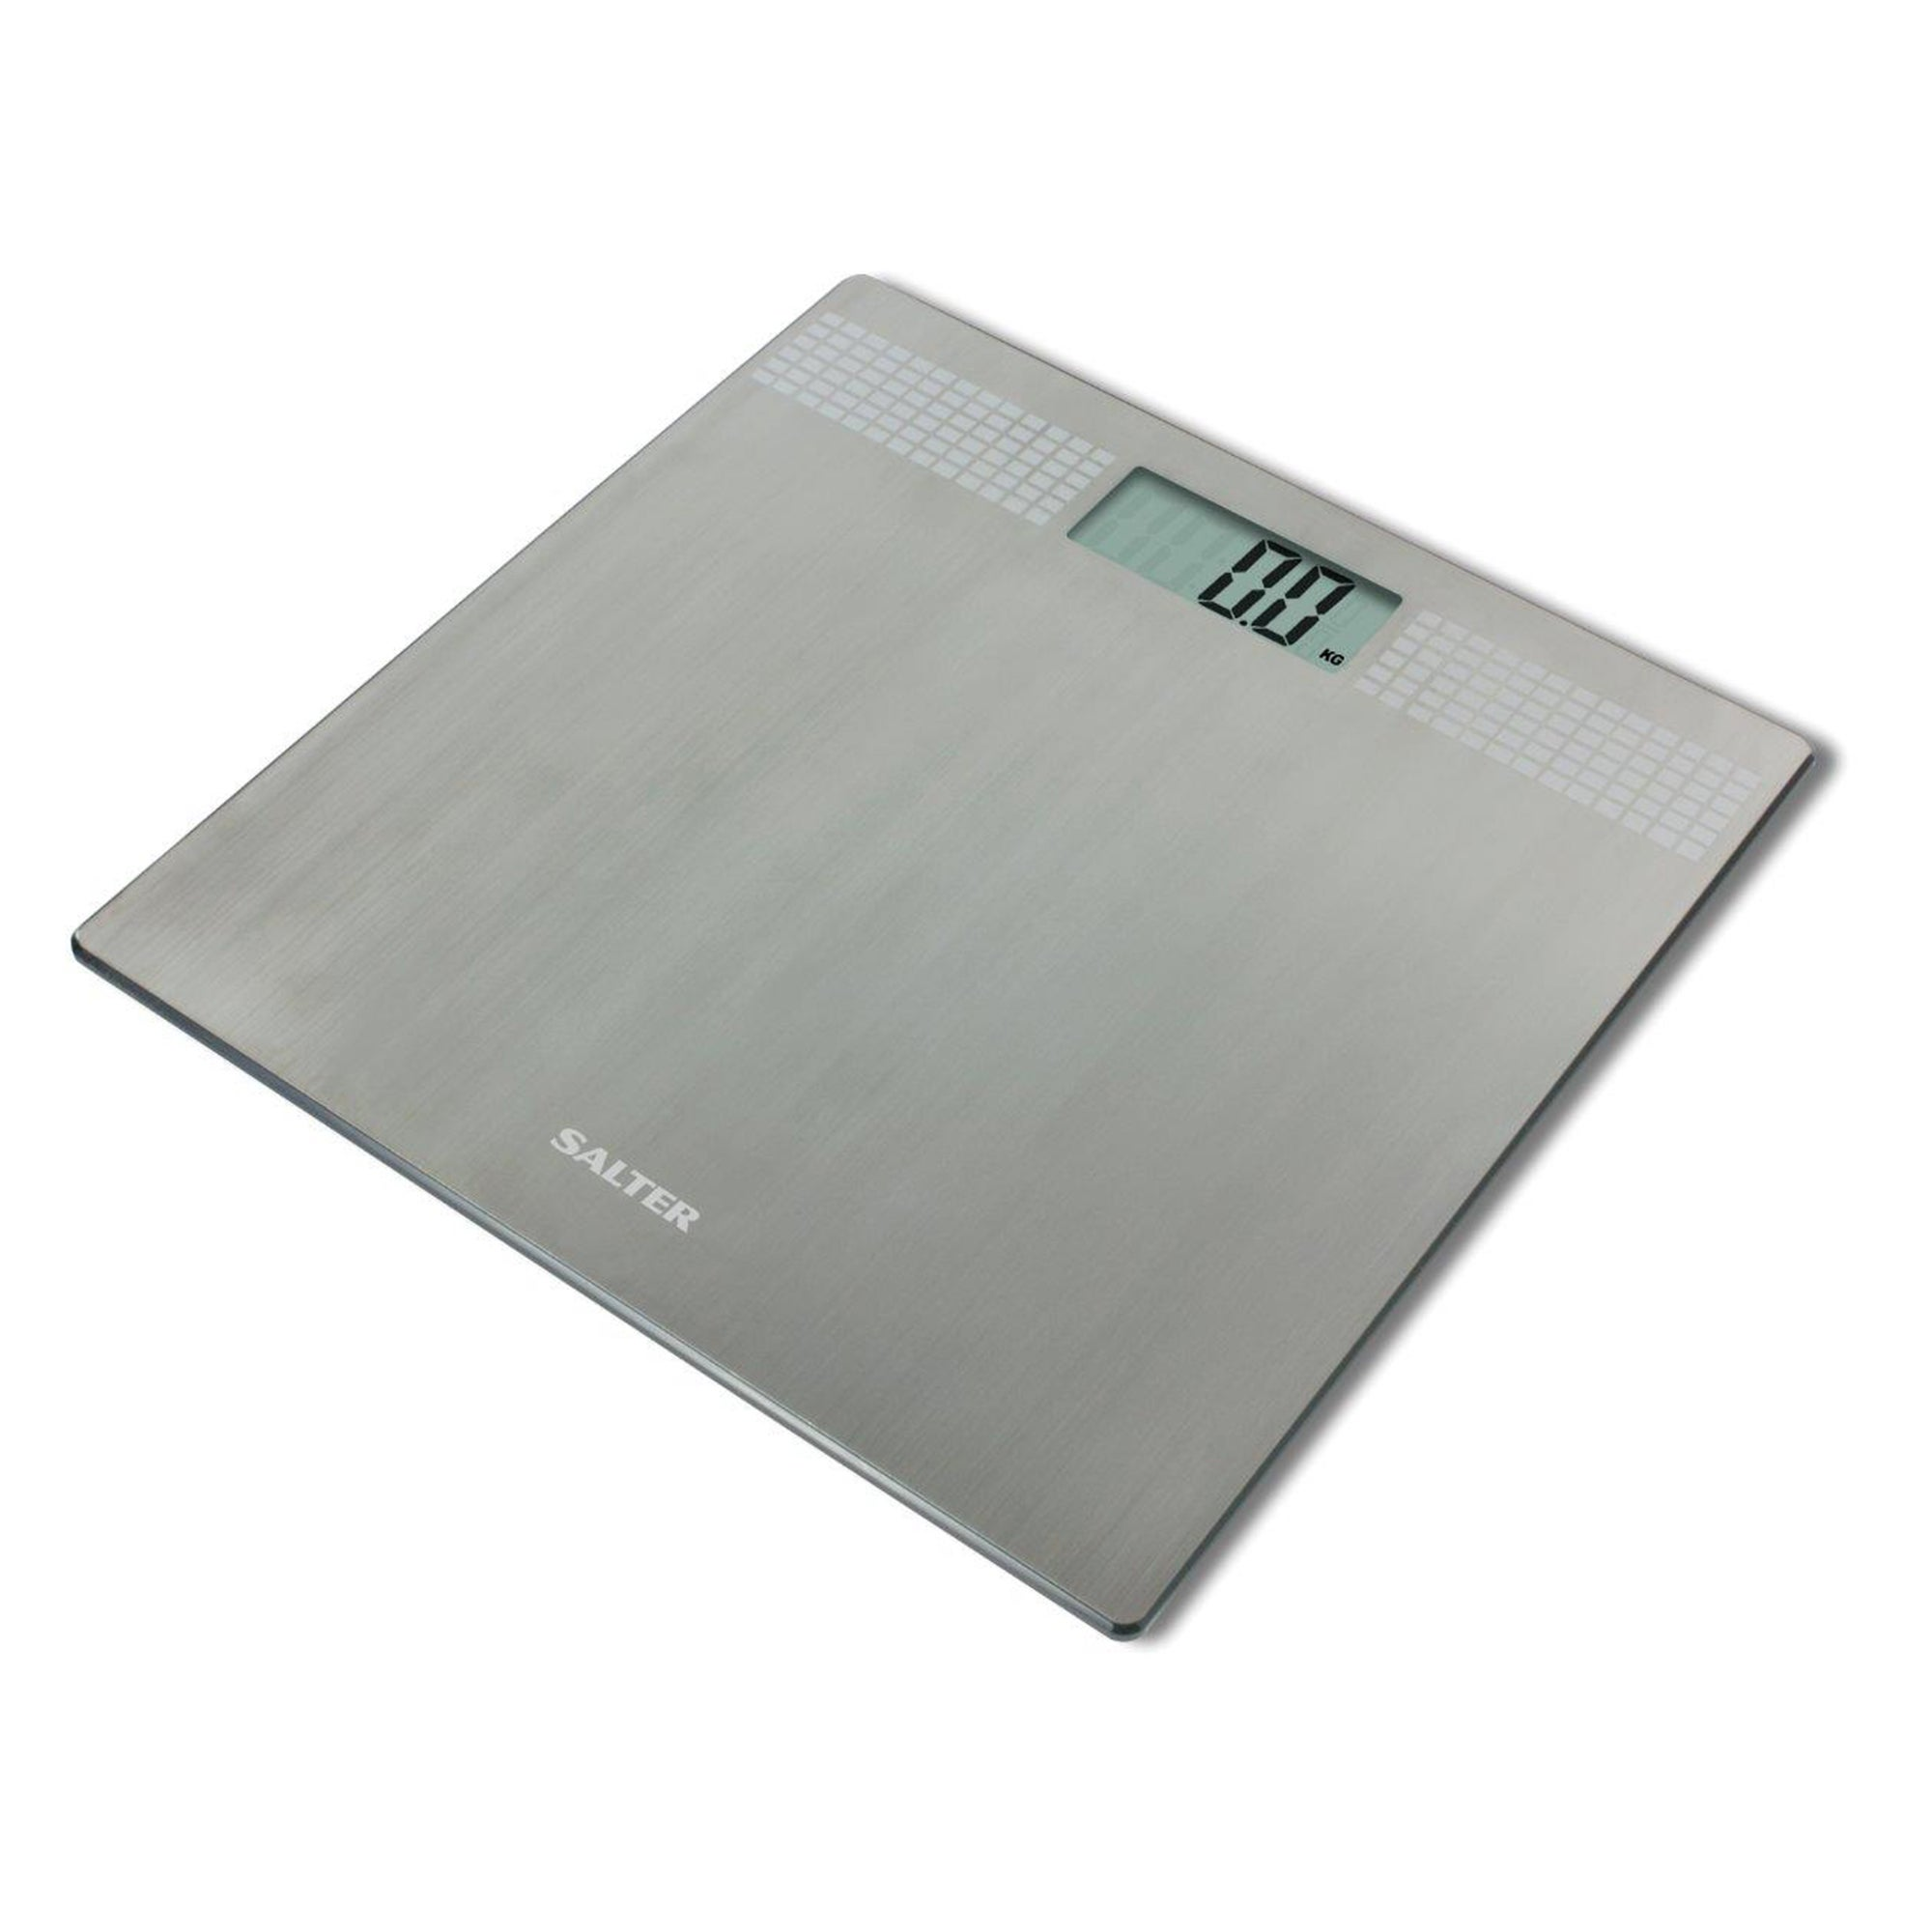 Salter UltraSlim Silver Electronic Bathroom Scale Stainless Steel